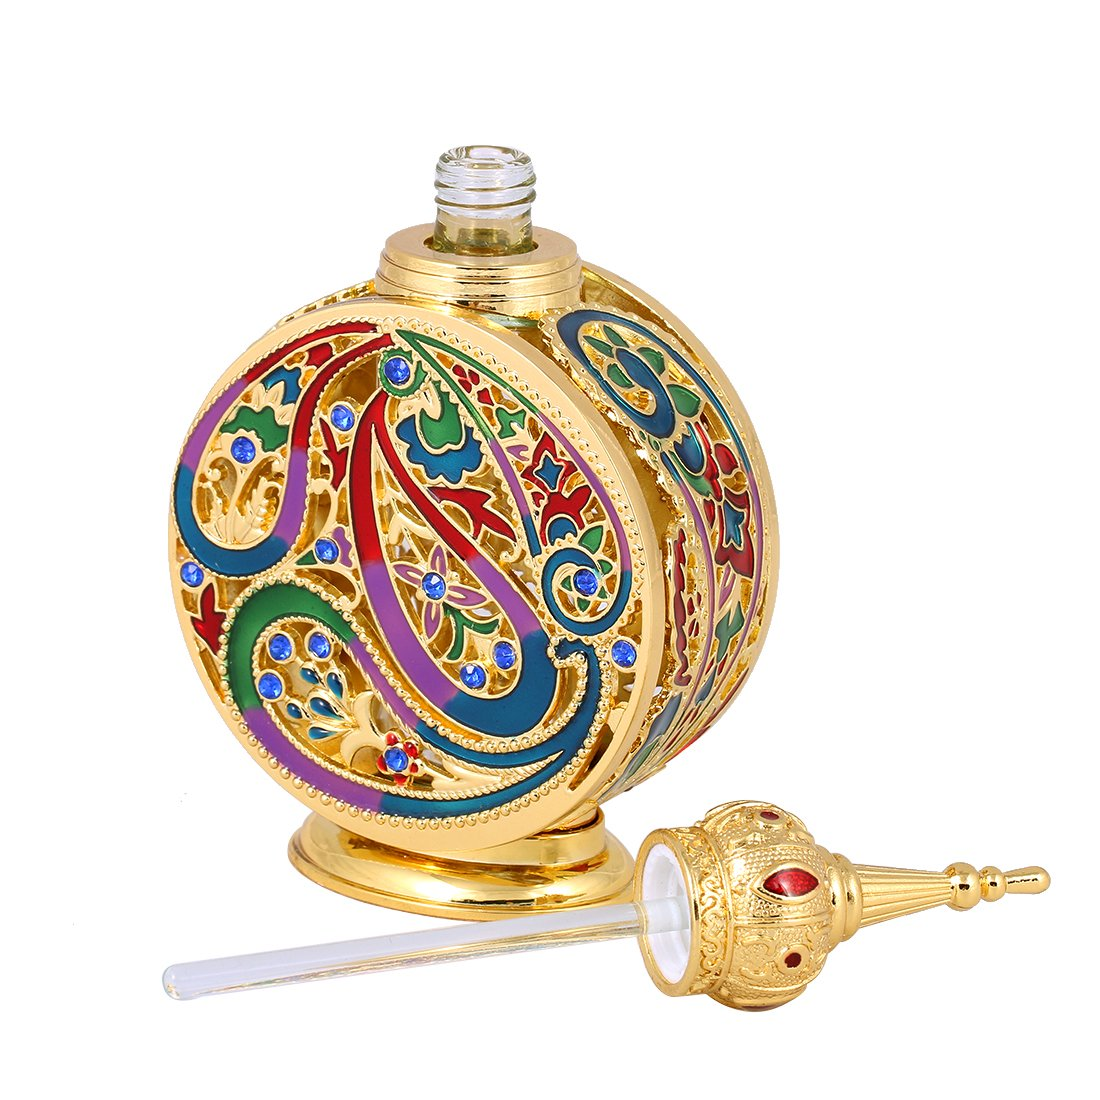 H&D Vintage 18ml Empty Refillable Egyptian Style Enameled Metal and Glass Perfume Bottle 2